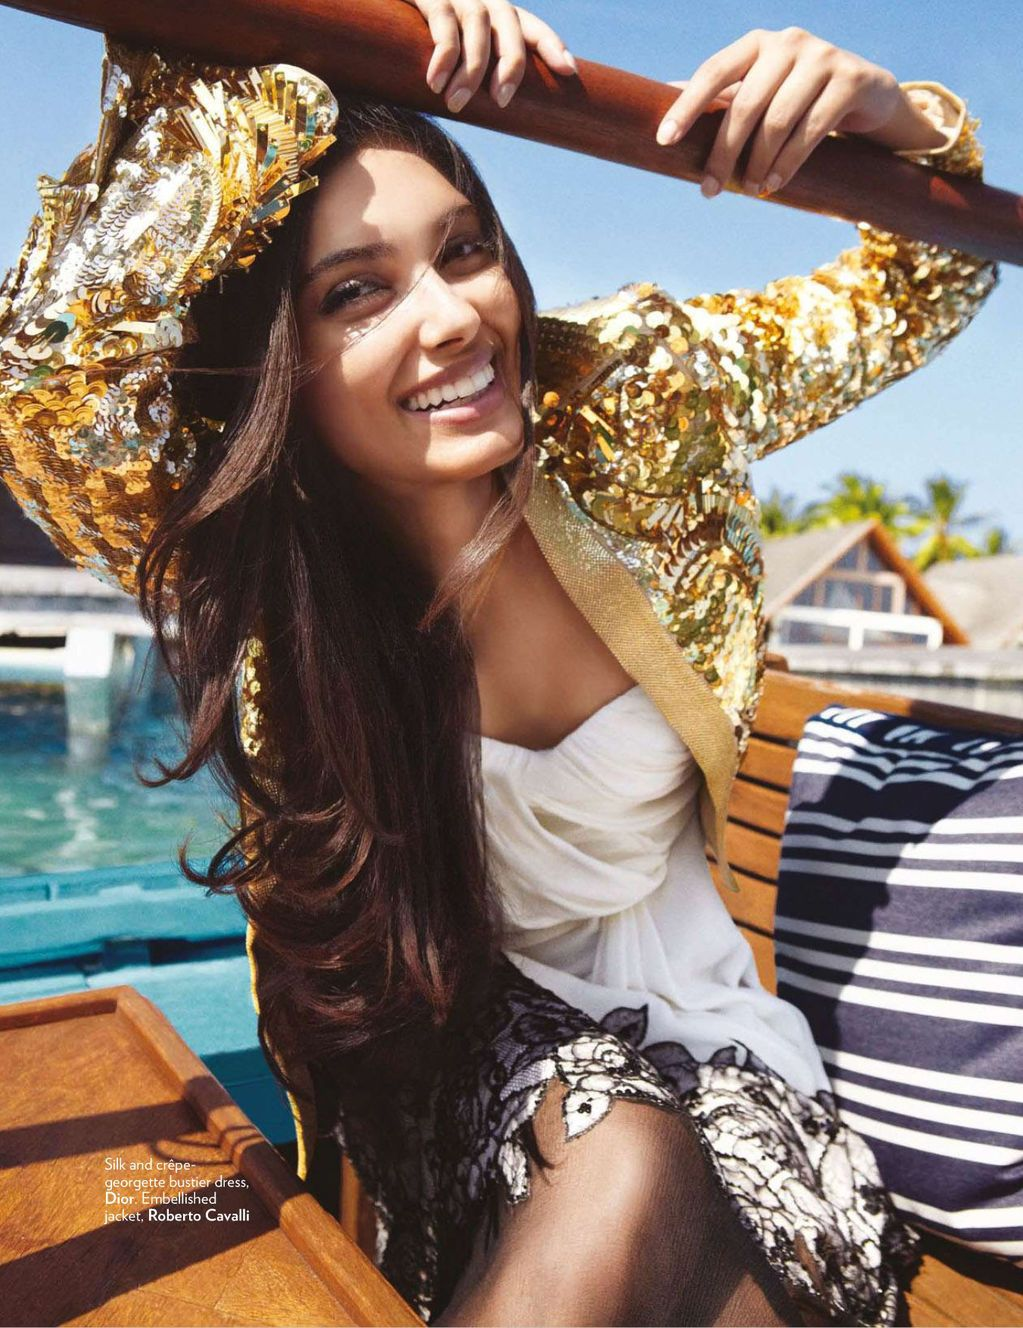 Tumblr Hot Indian Girls Top indian model and up coming actress diana penty (here for vogue